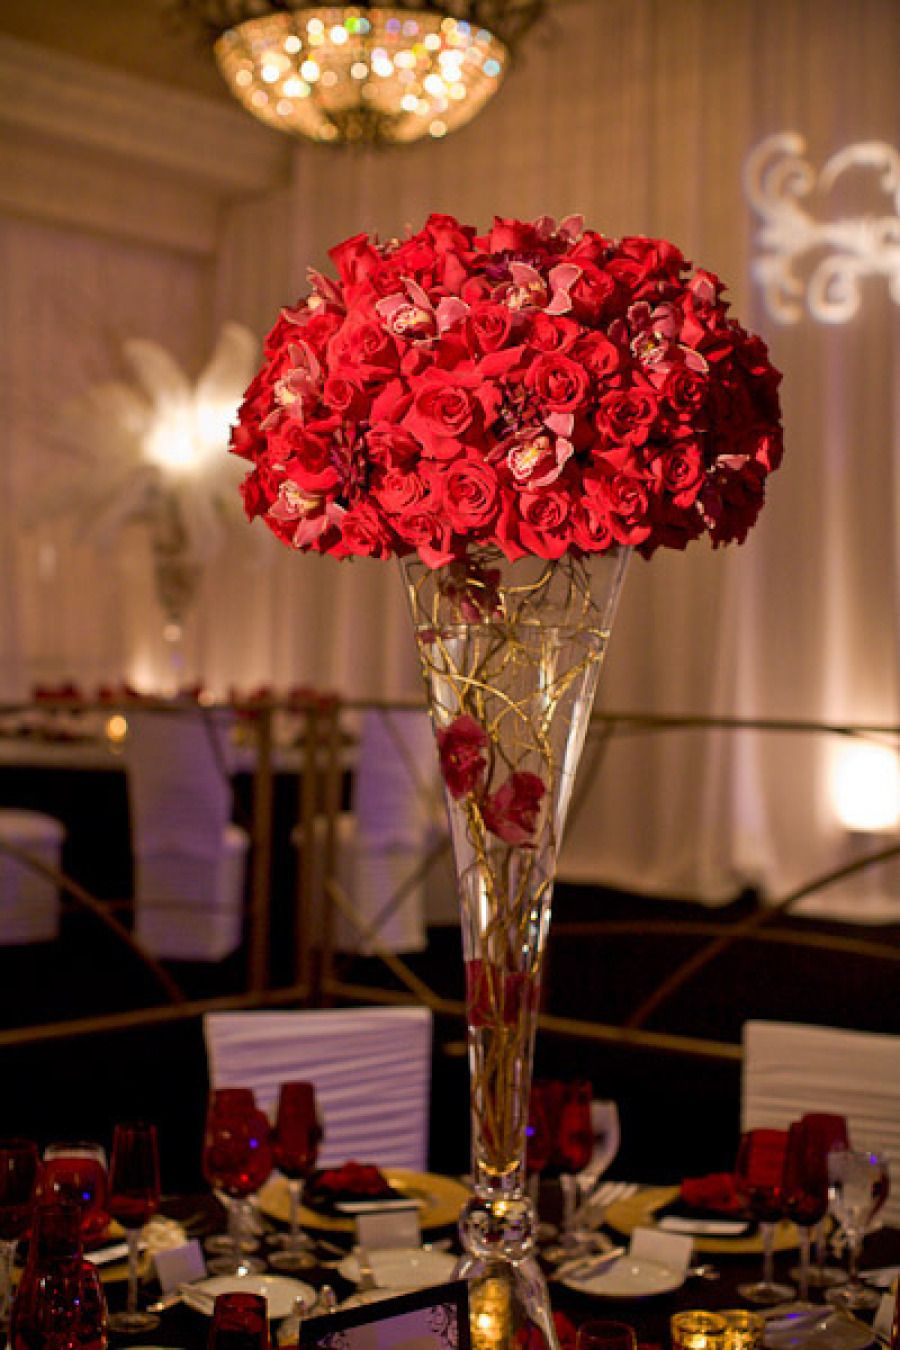 Wedding Topiary Ideas Part - 19: Red Rose Wedding Topiary Centerpiece For Vintage Glam Weddings